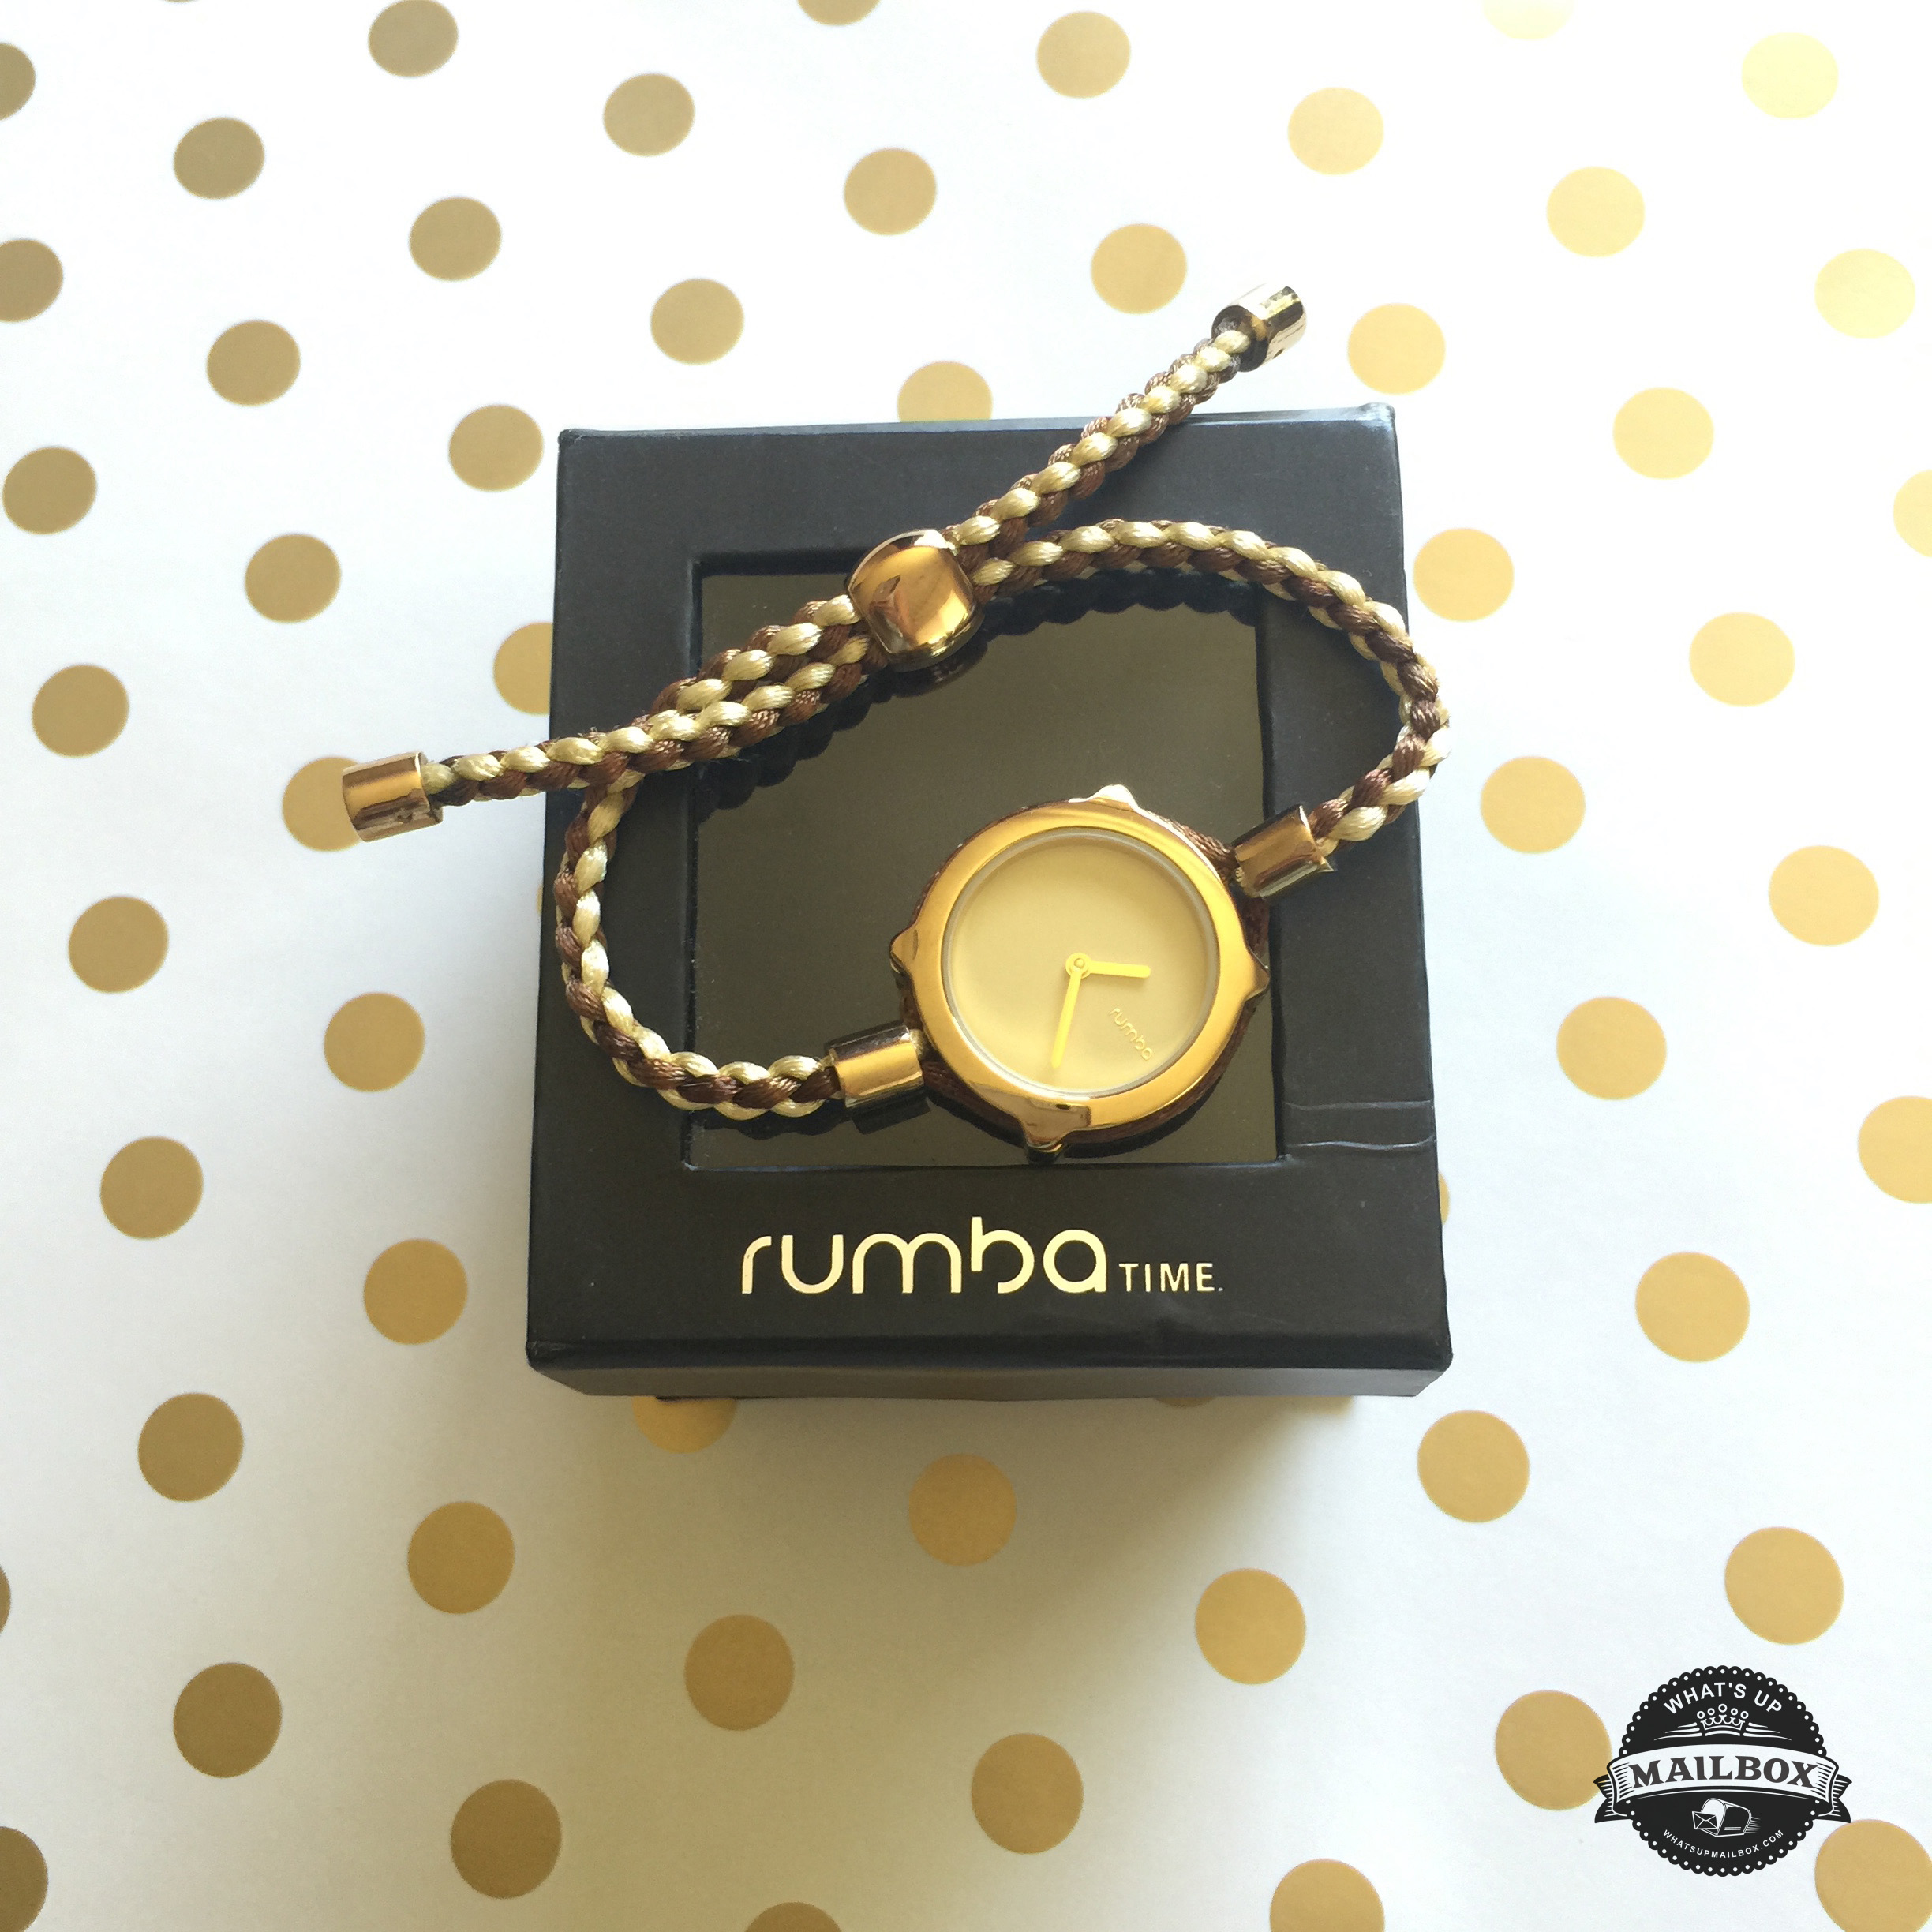 rumbaTime Gramercy Watch Review